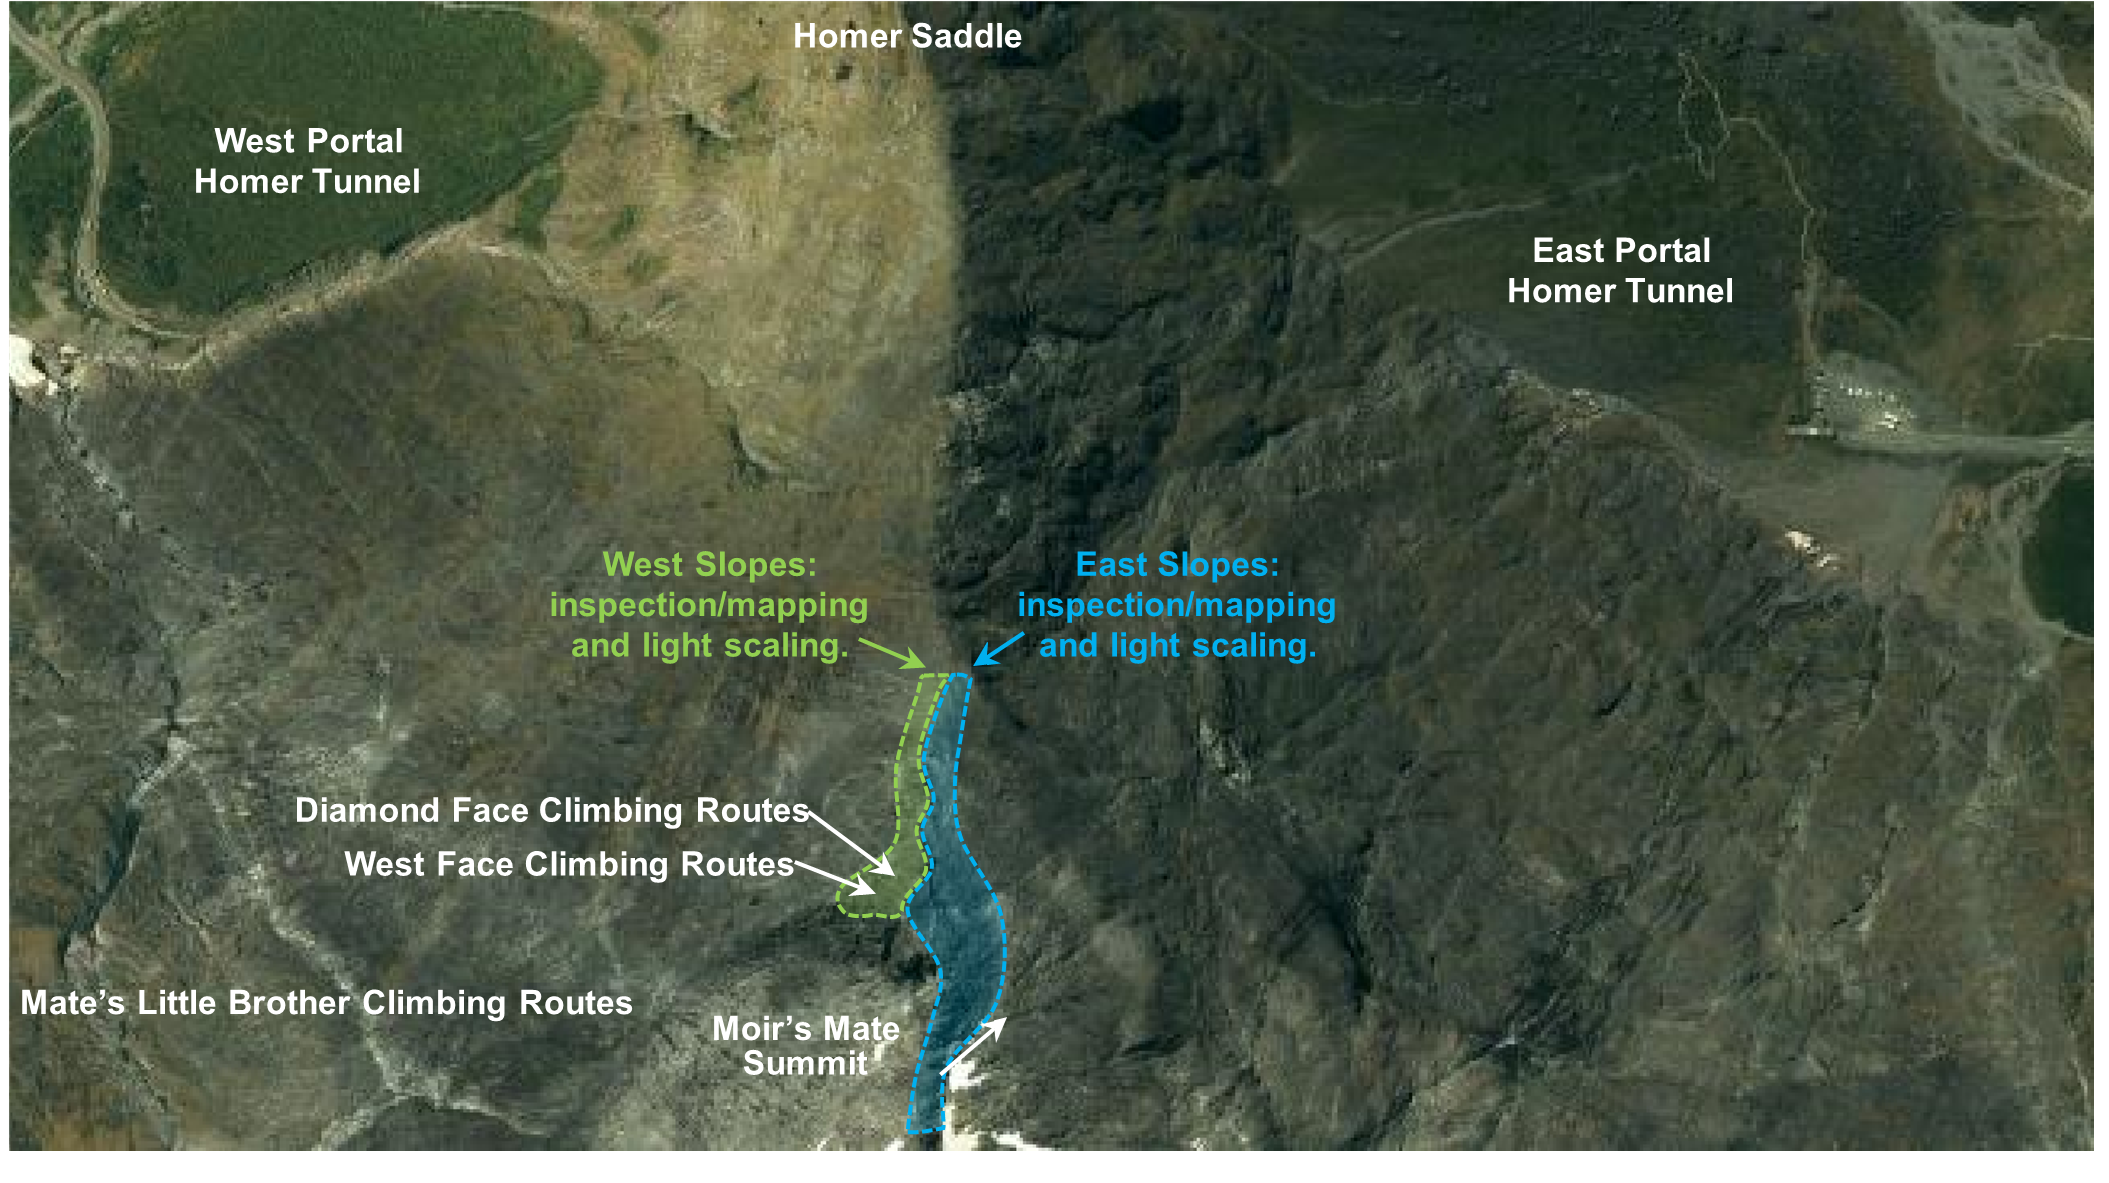 Google Earth image highlighting areas scheduled for rock slope inspections and light scaling